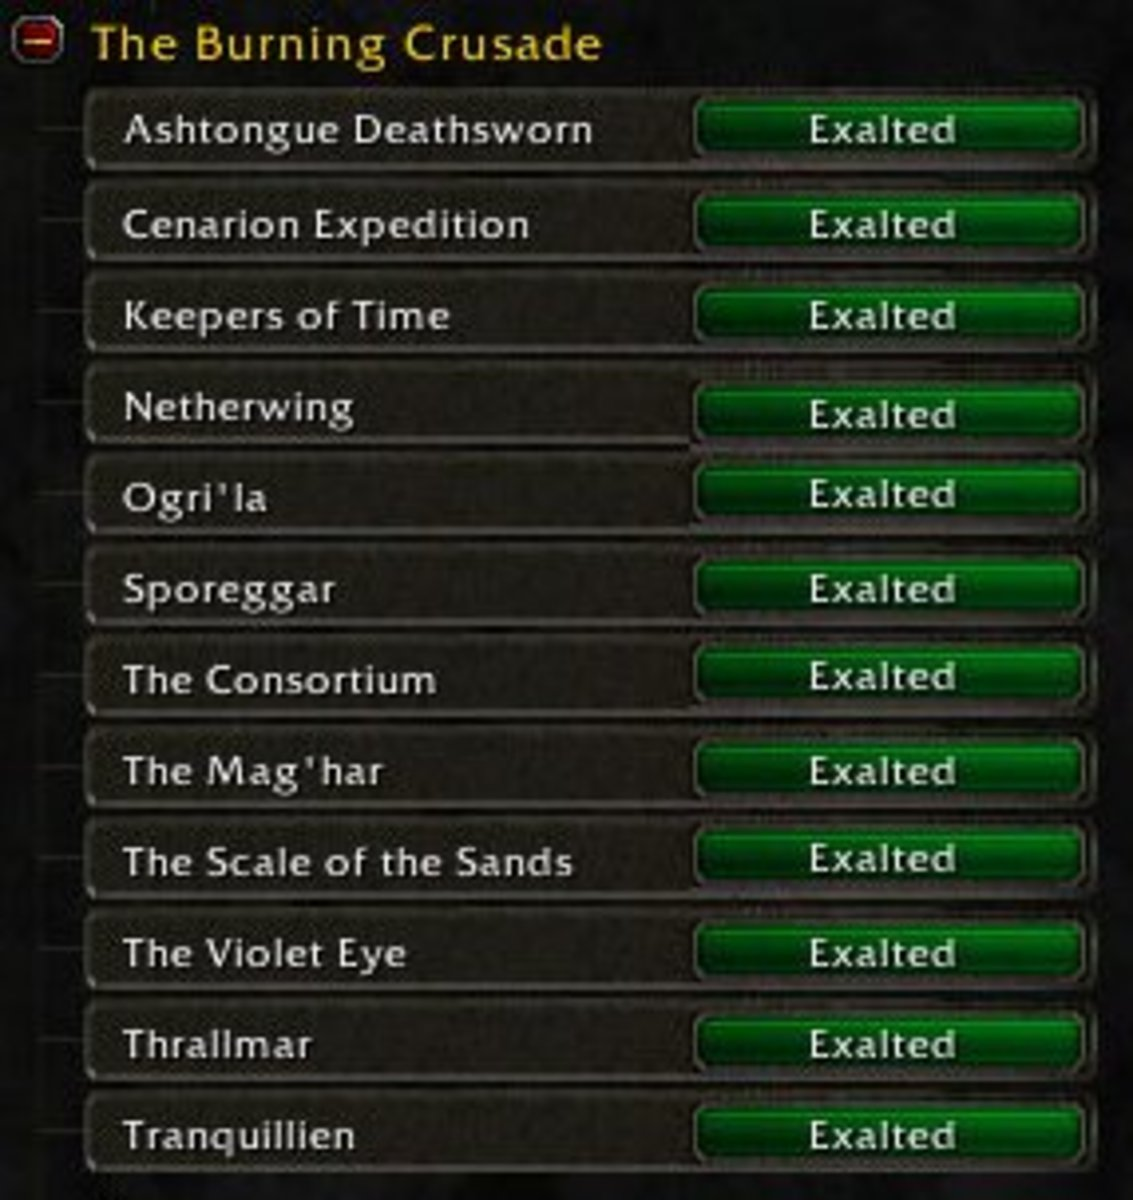 The Burning Crusade Factions at Exalted